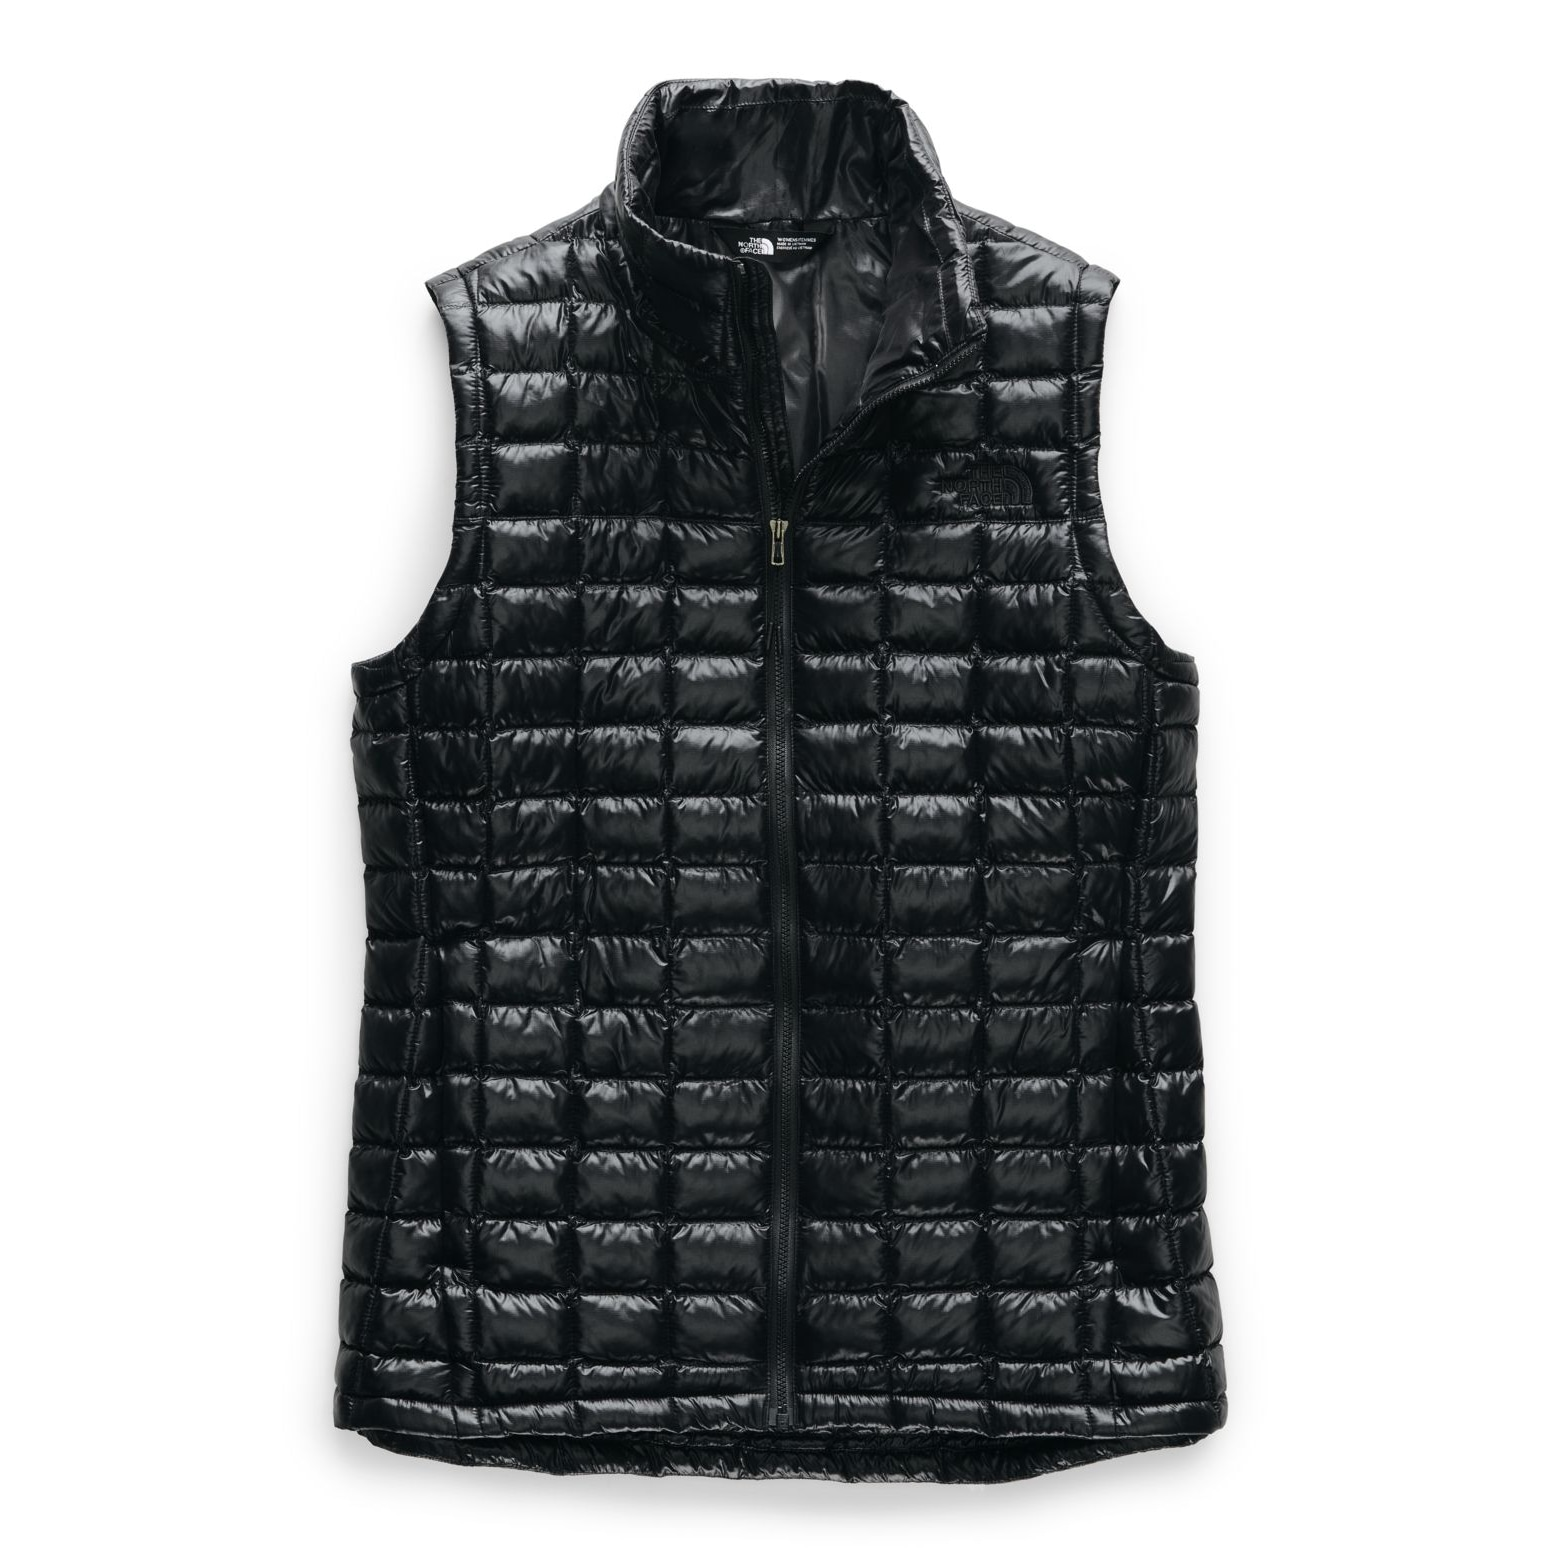 ThermoBall Eco Vest - Women's